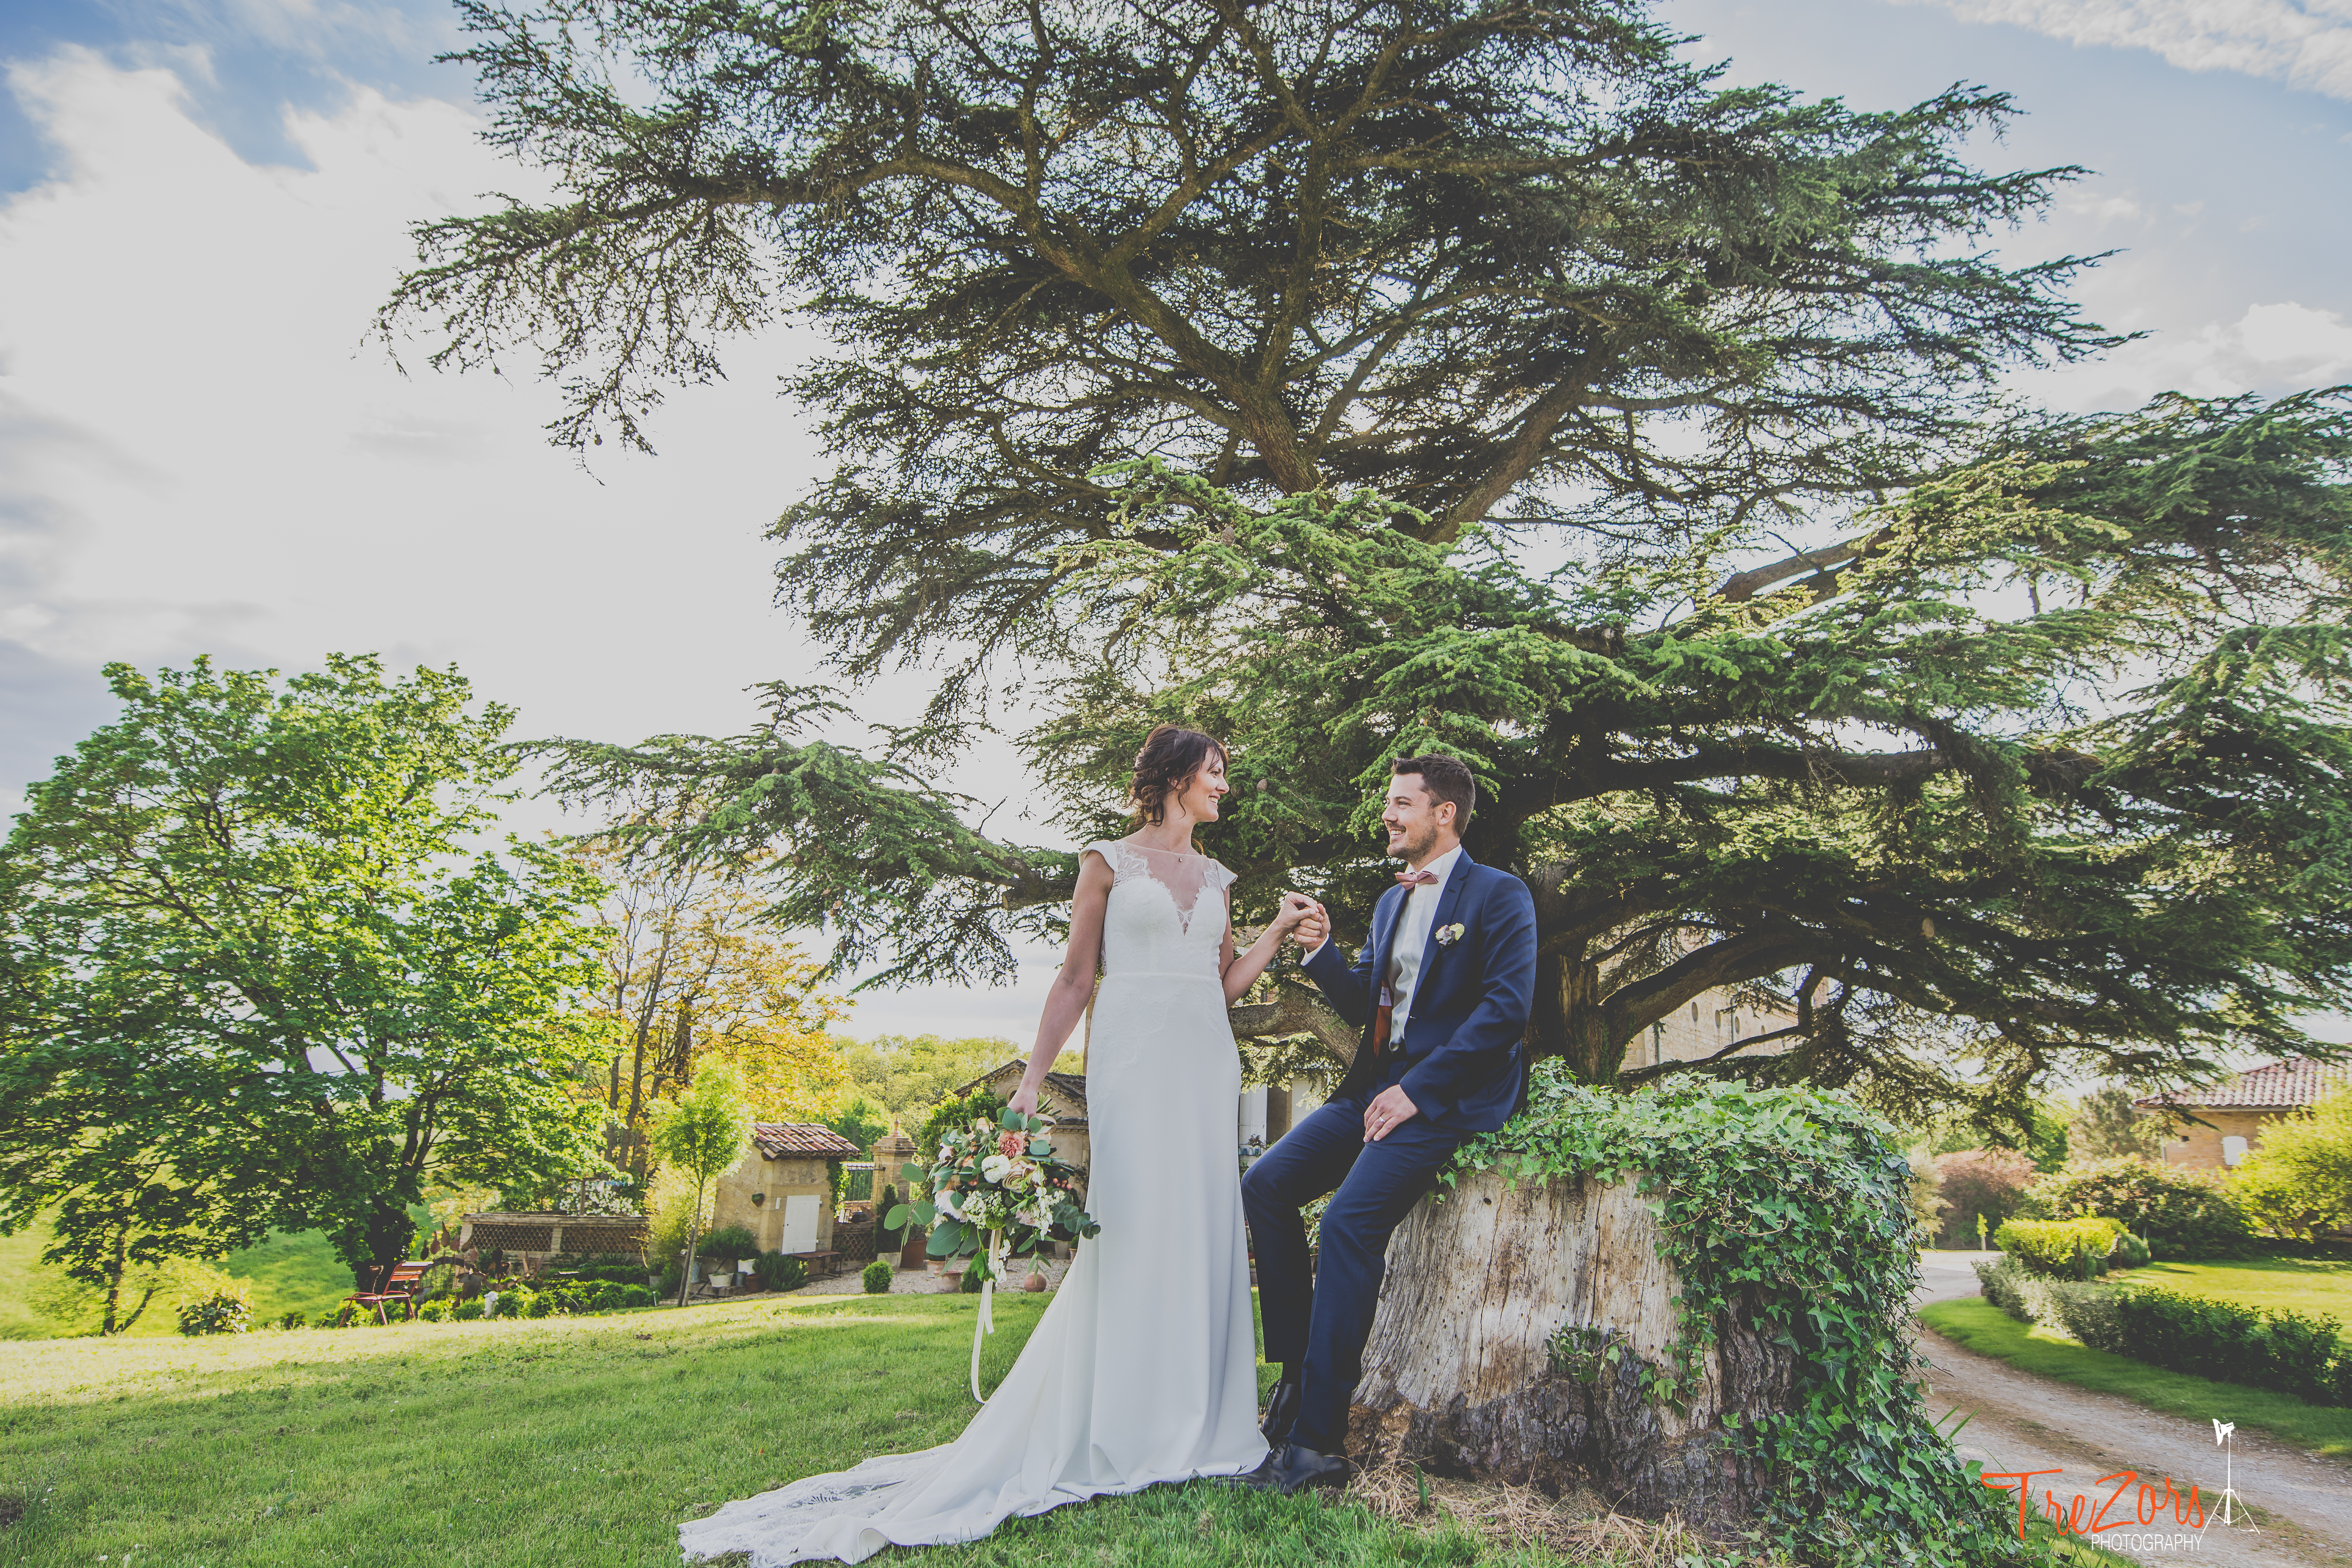 trezors-photography-photographe-professionnel-mariage-inspiration-romantic-chic-made-in-Tarn-372